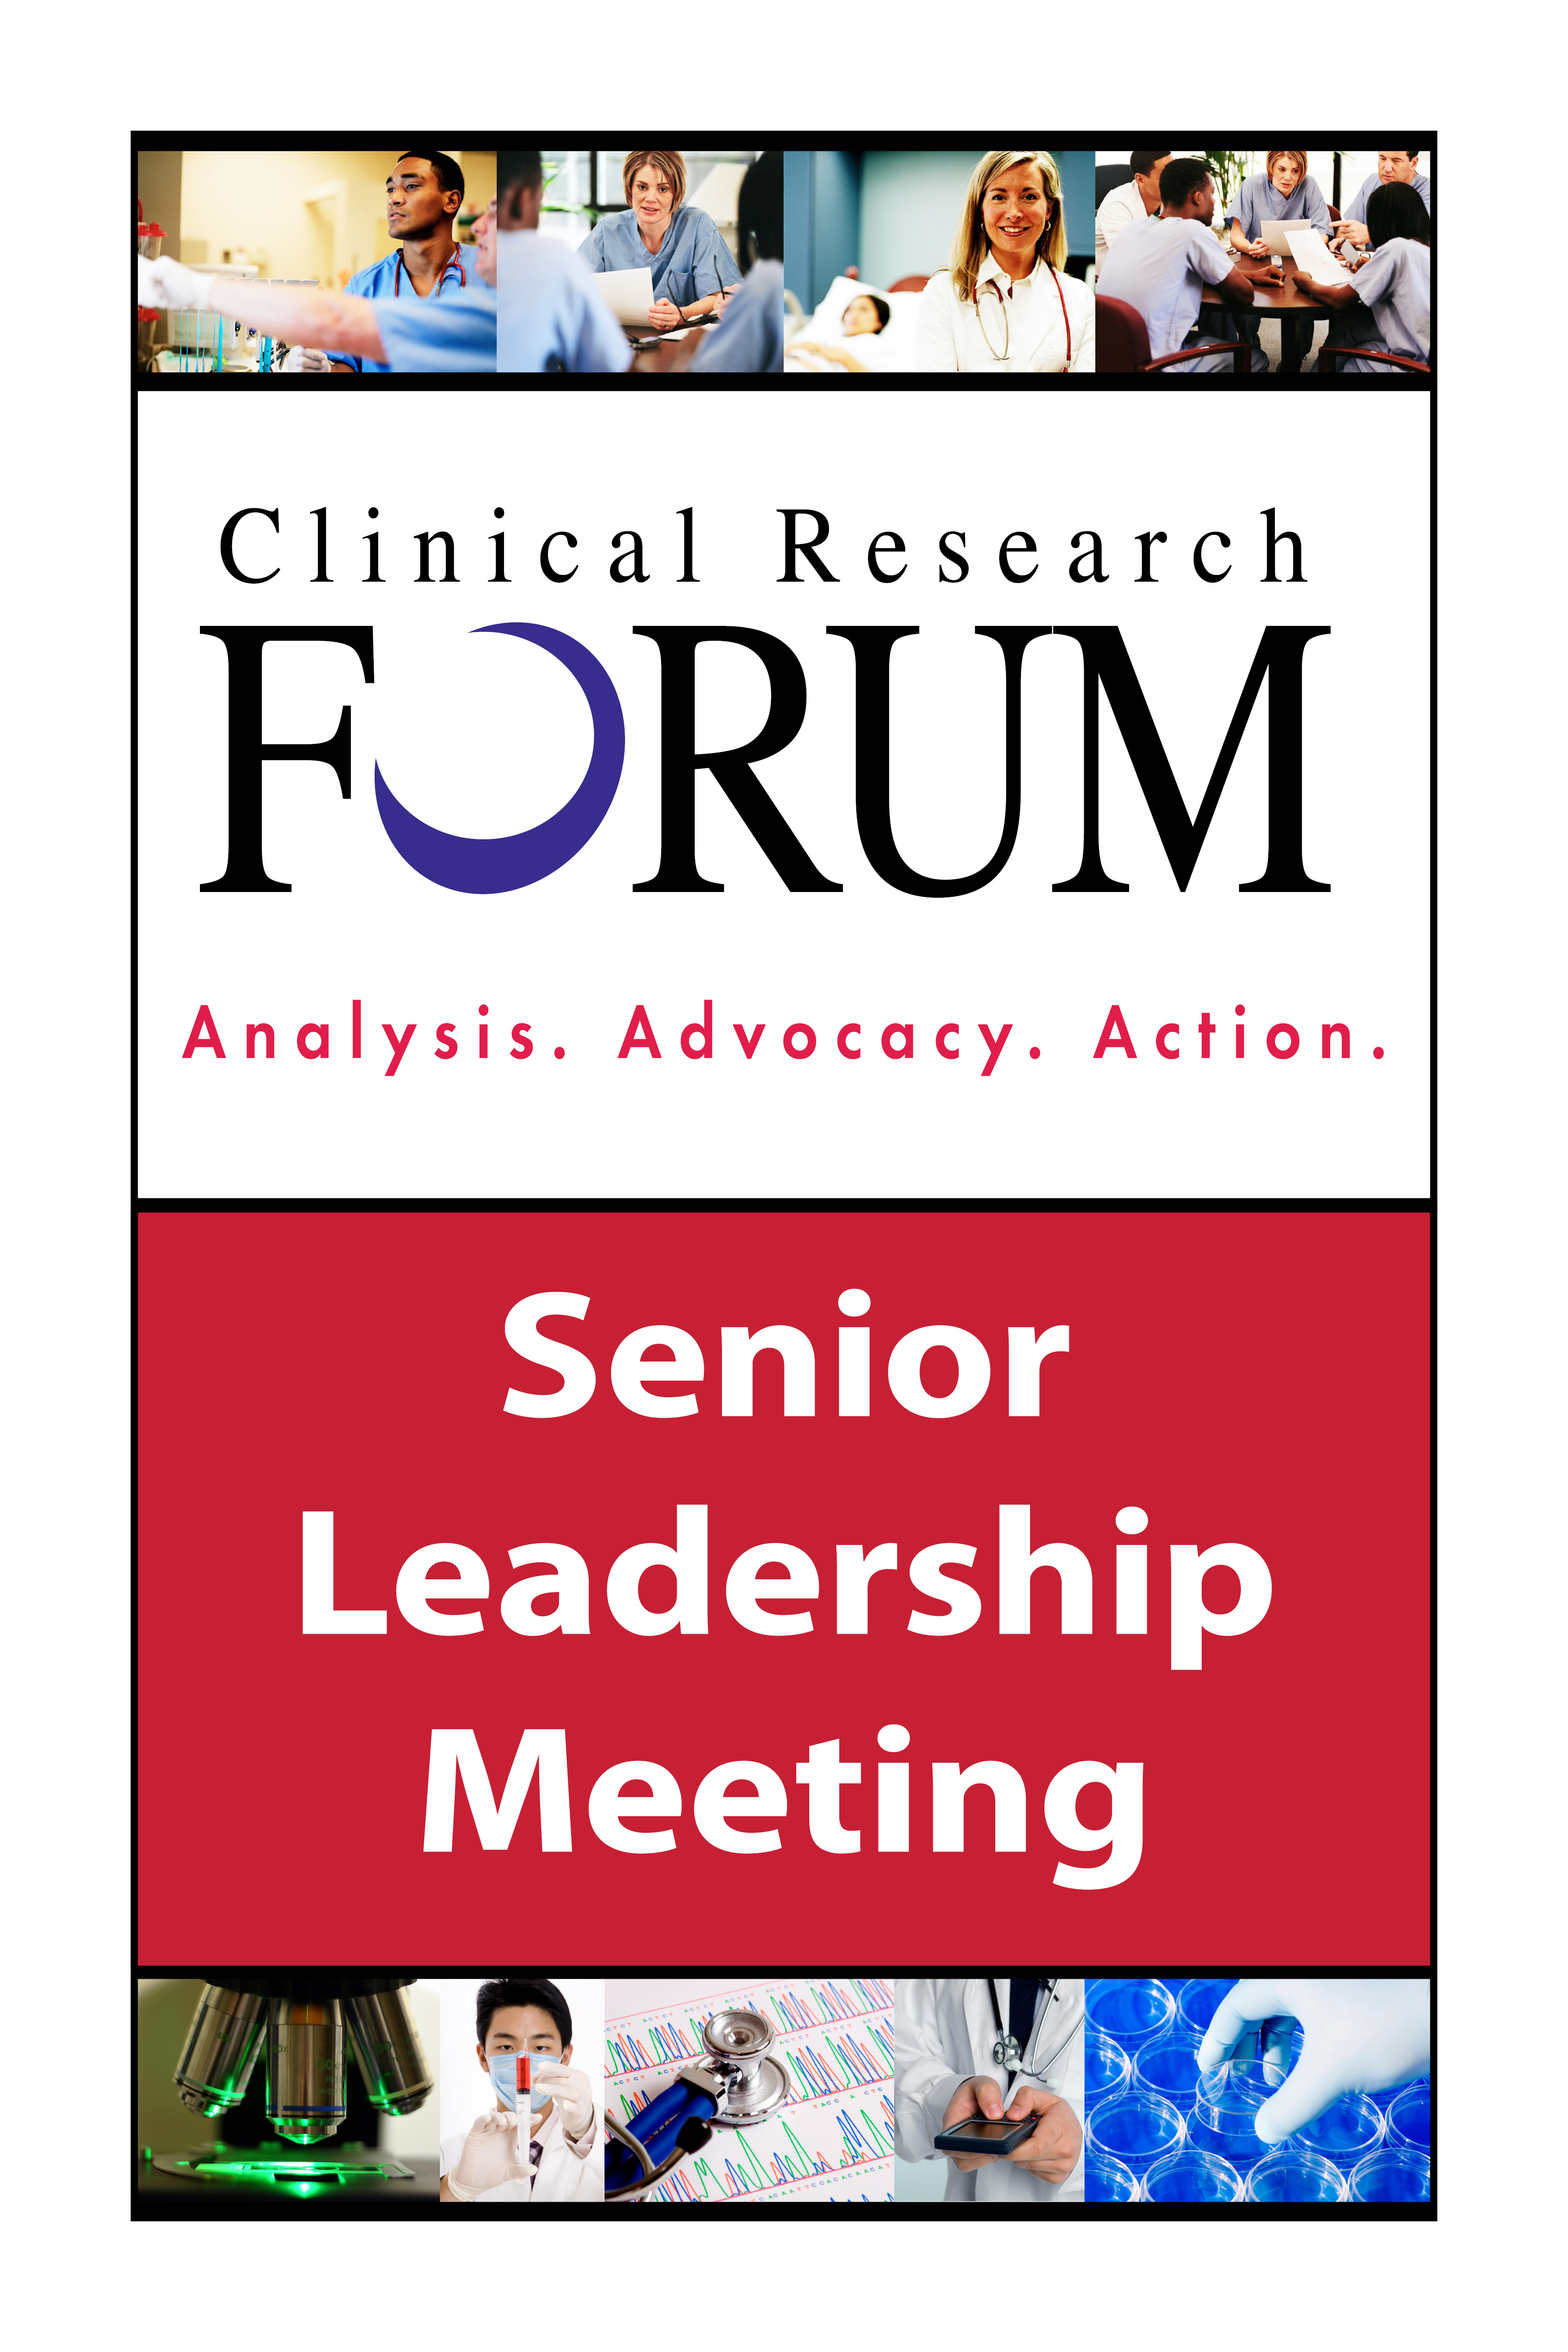 Clinical Research Forum Senior Leadership Meeting poster